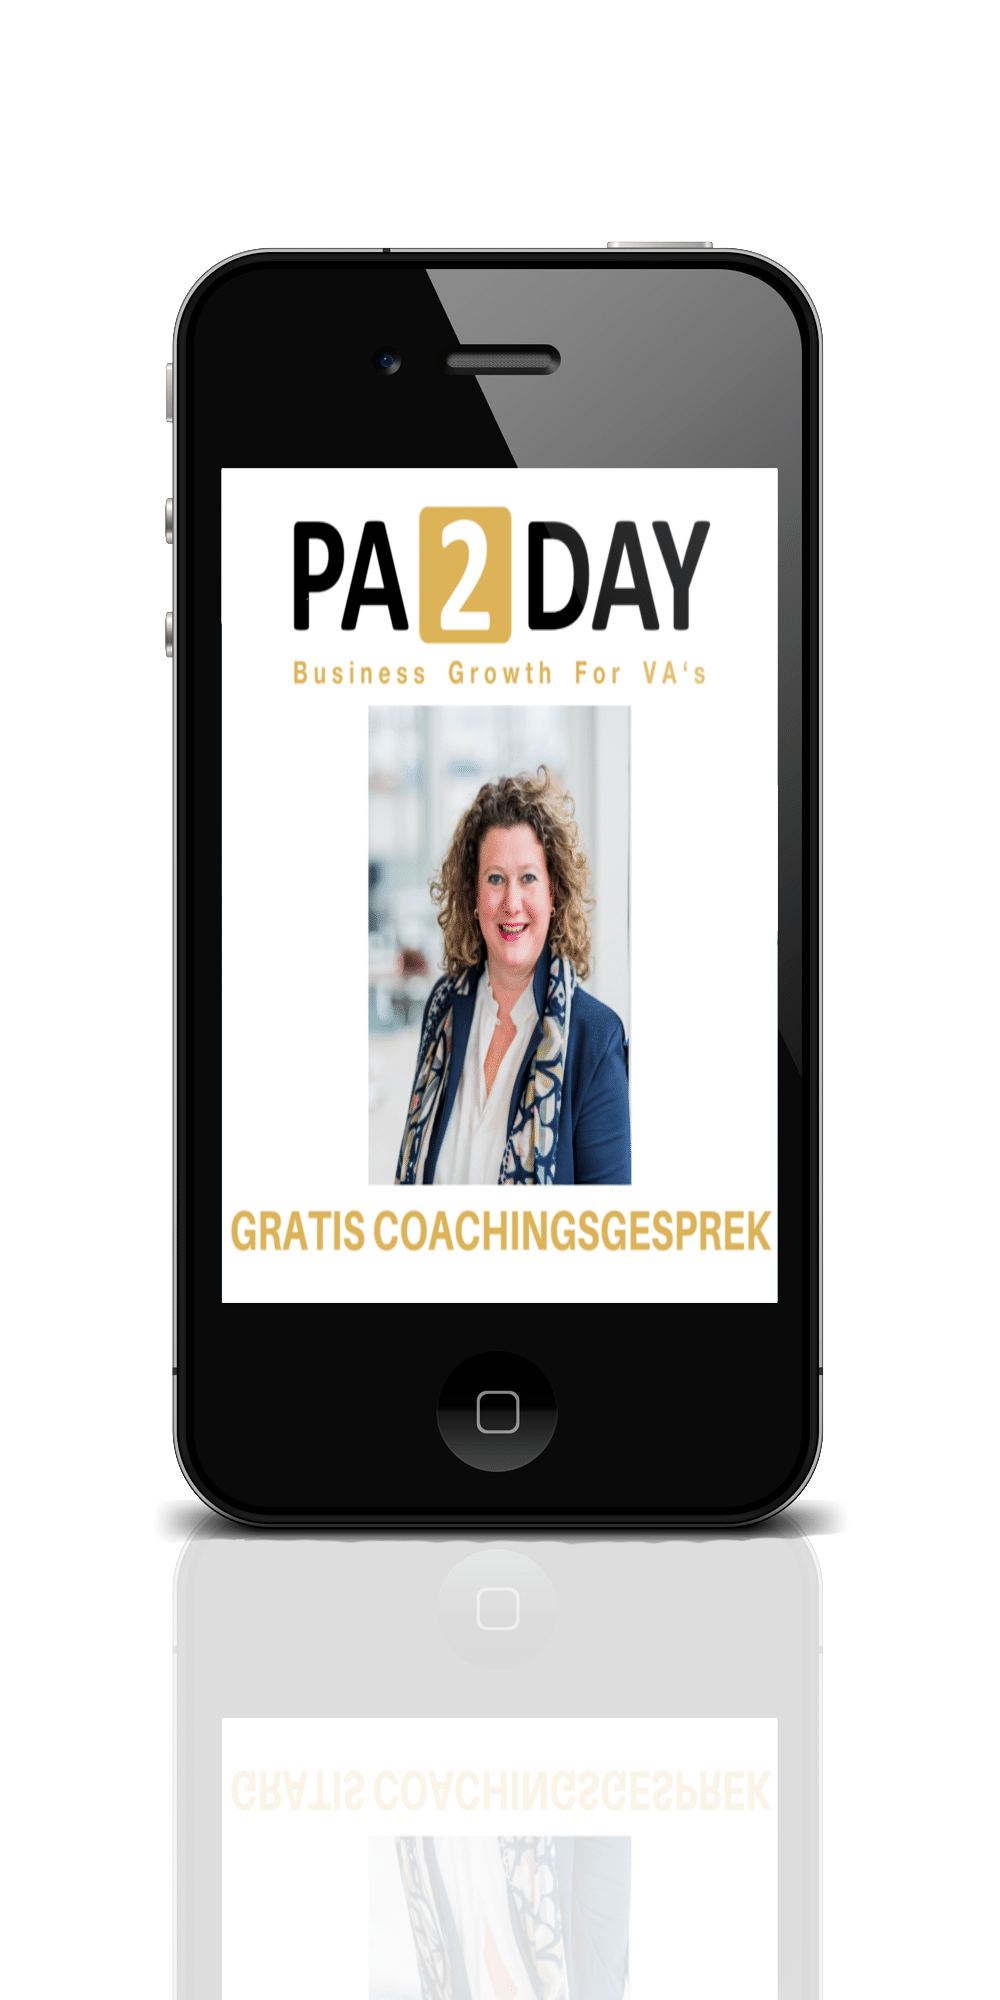 PA2DAY Gratis coachingsgesprek